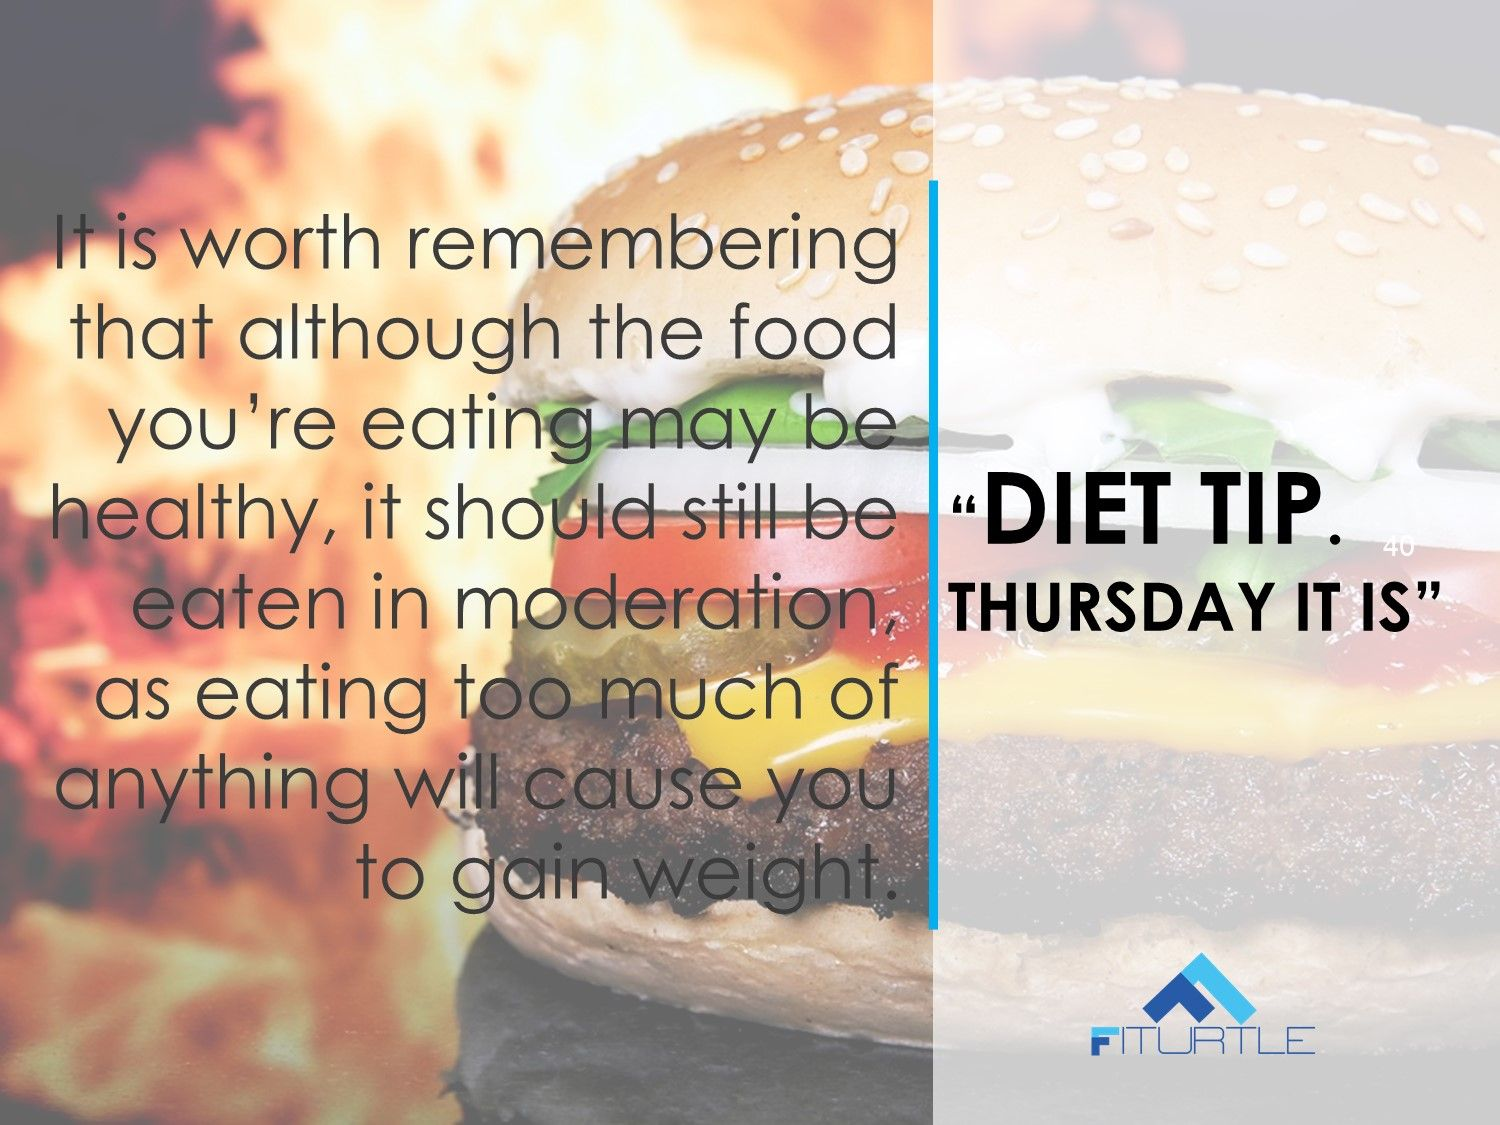 #FIT  #RightFood  #DietTip  #StayHealthy   THURSDAY IT IS, Here Comes The Food Tip! Choose what you eat. Eat Well. Eat Right.